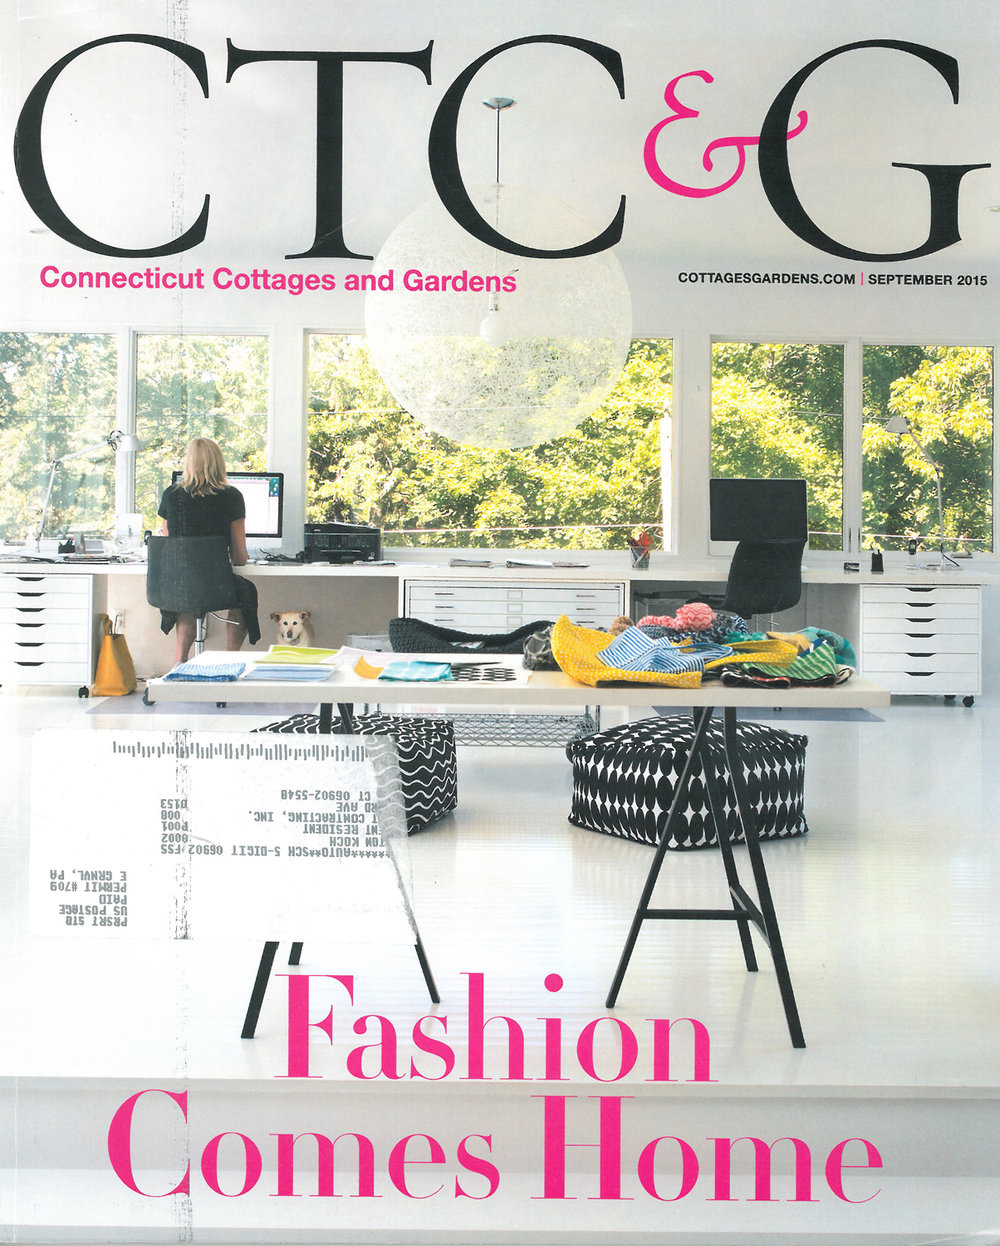 CT Cottages & Gardens September 2015